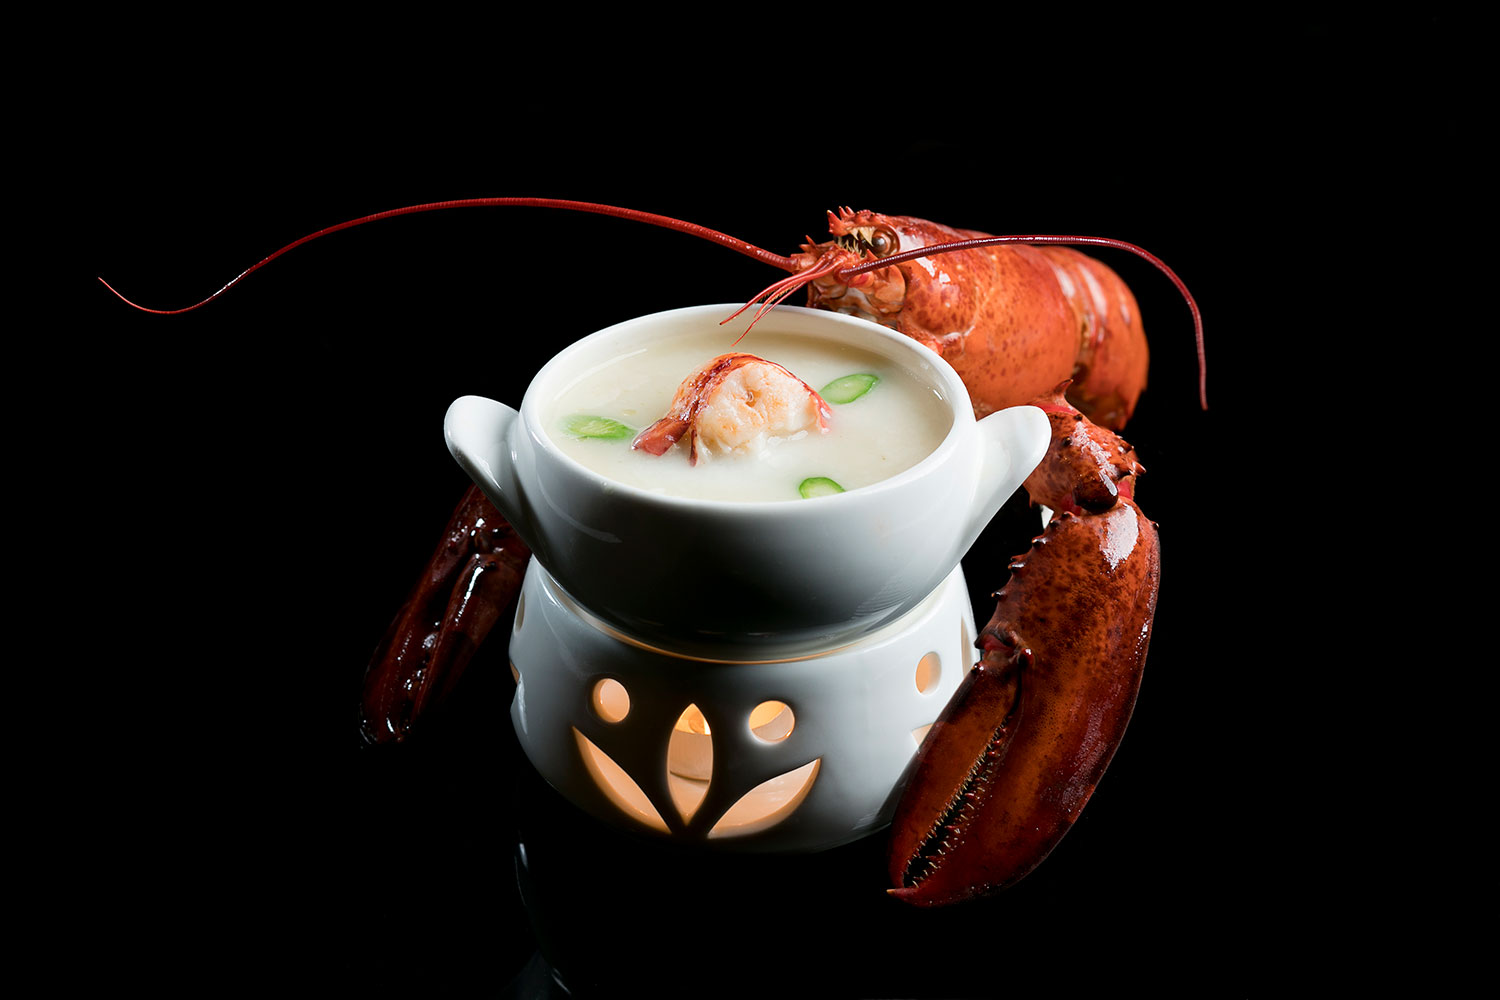 Double boiled MSC Maine Lobster and Organic ASC Prawn in Superior Fish Broth